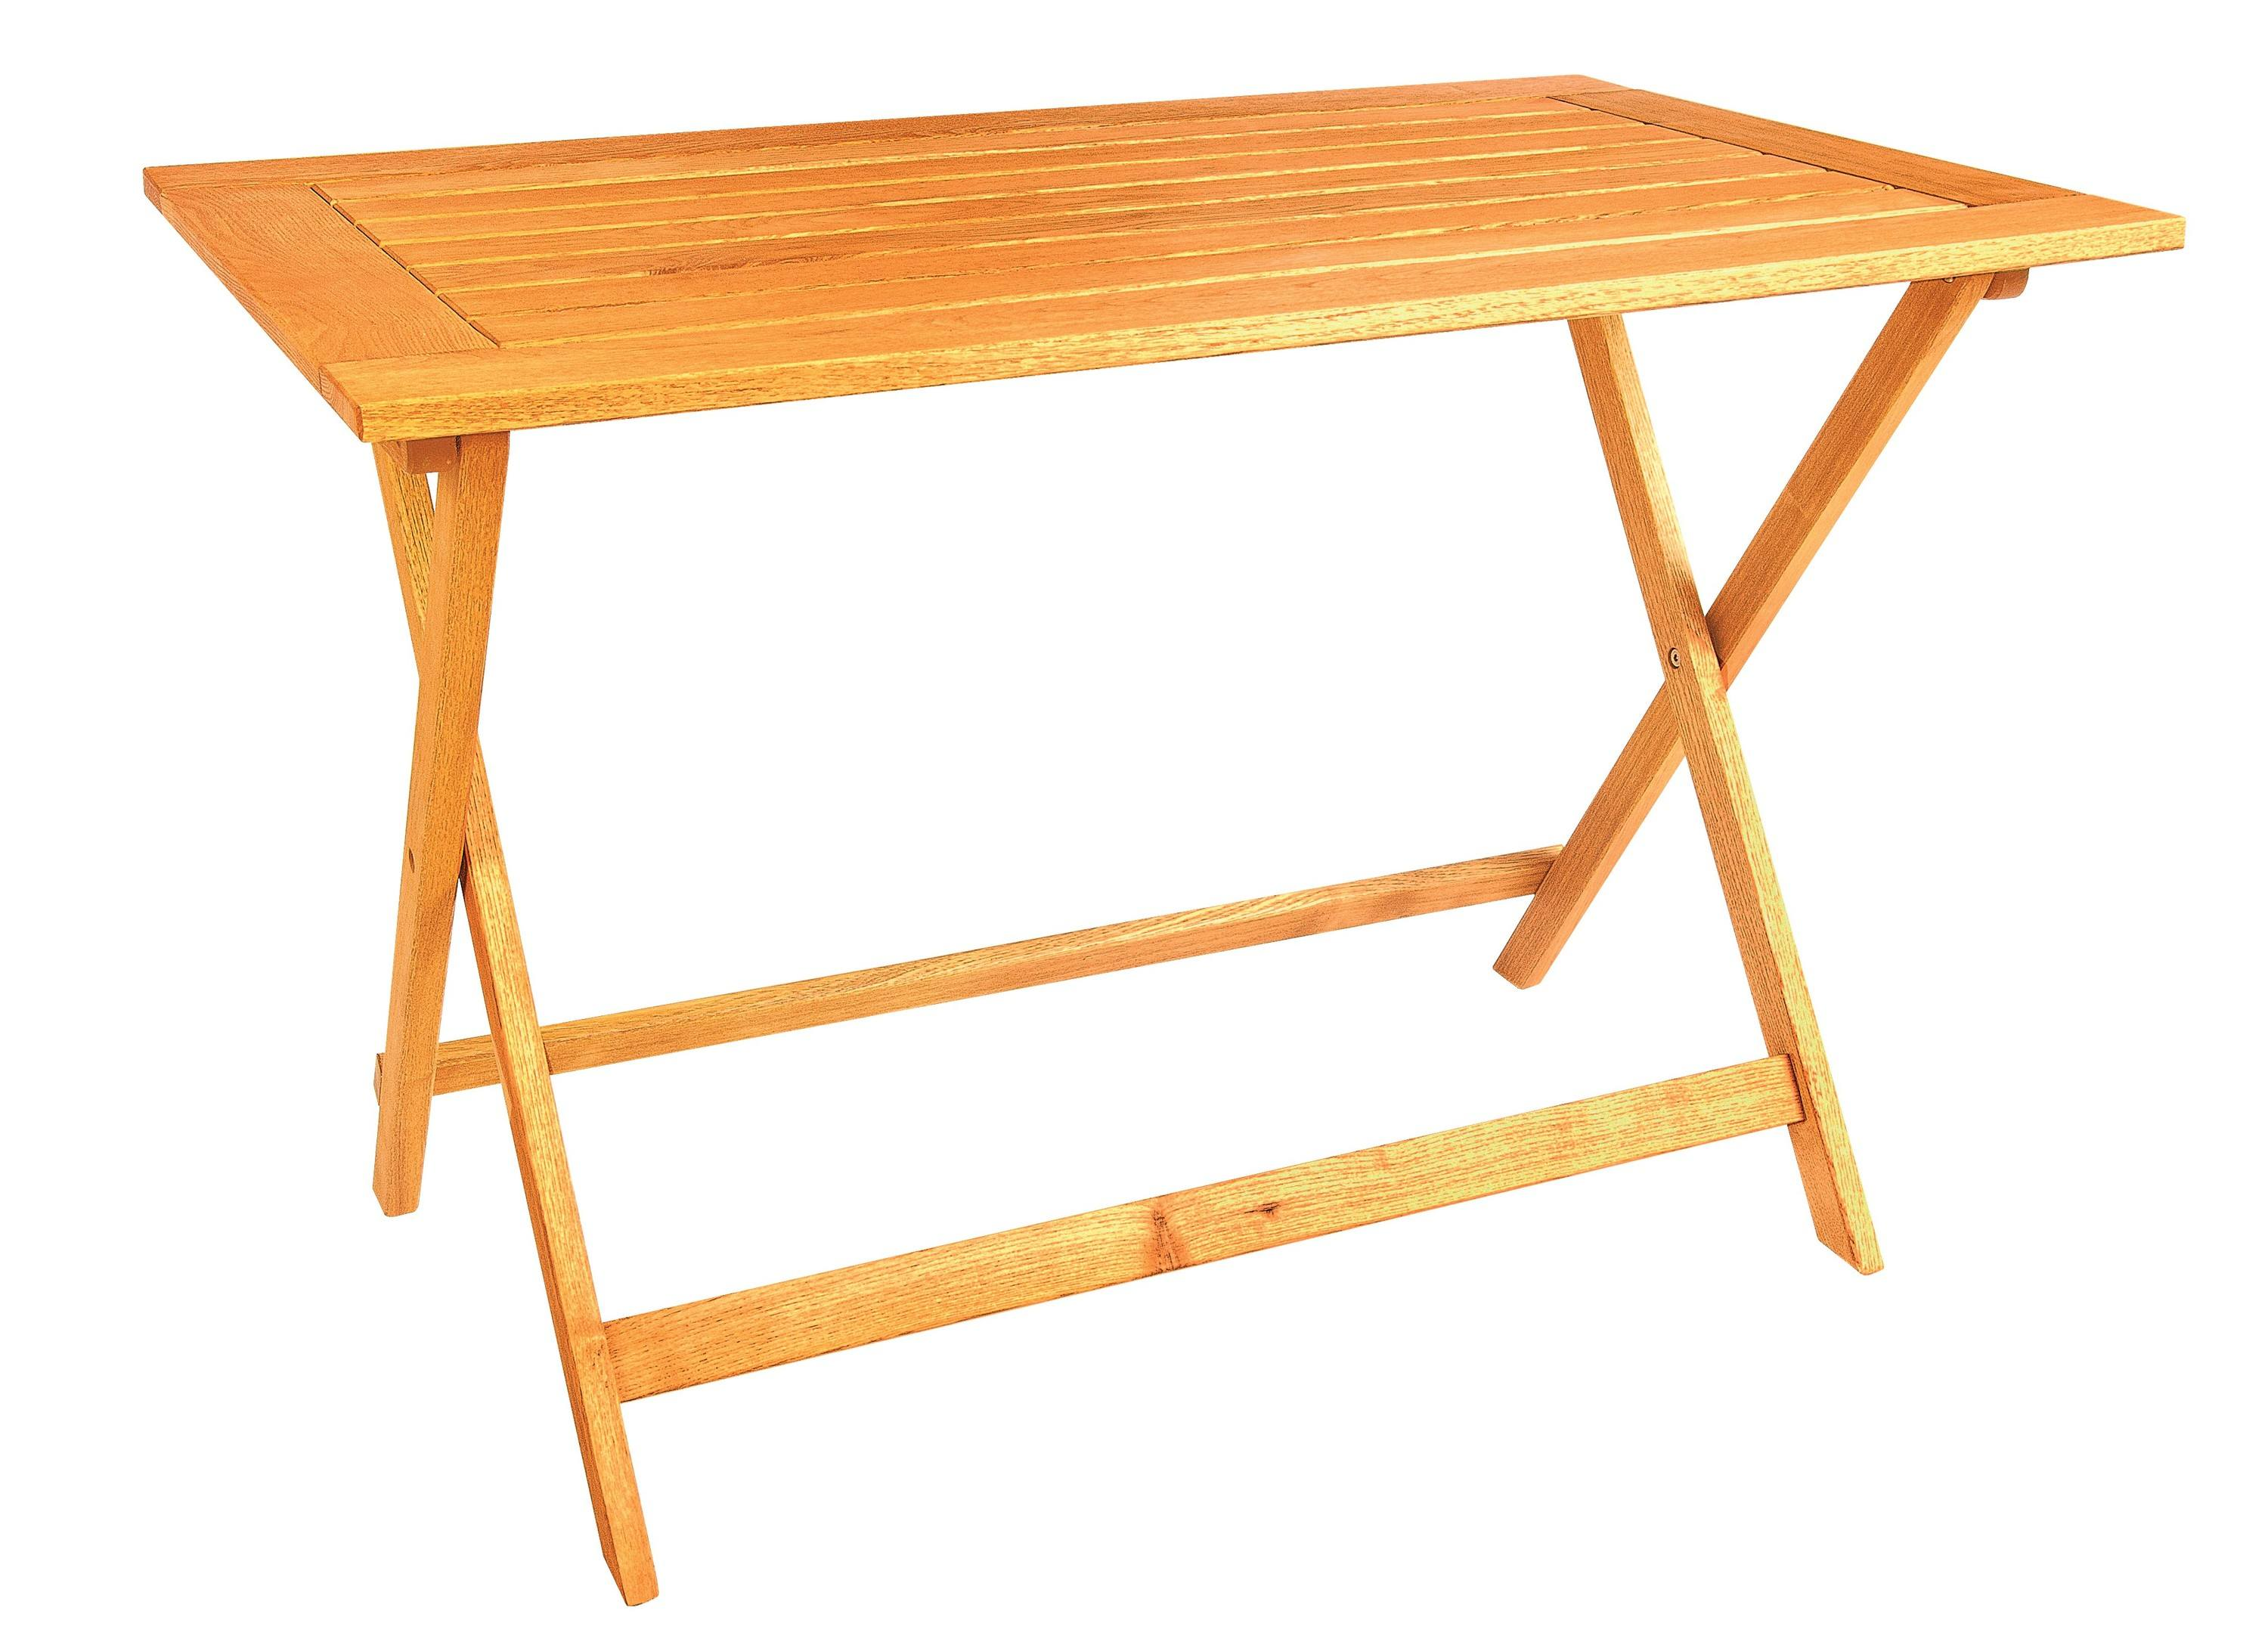 <p>Outdoor Furniture – Wooden Dining Collection Sorrento Foldable Table.</p> <p> </p> <p>Sorrento Furniture – Foldable Table.</p> <p> </p> <p>Multi-purpose use within the hospitality industry as restaurant, café, bistro terrace furniture. Easy to store and transport.</p>